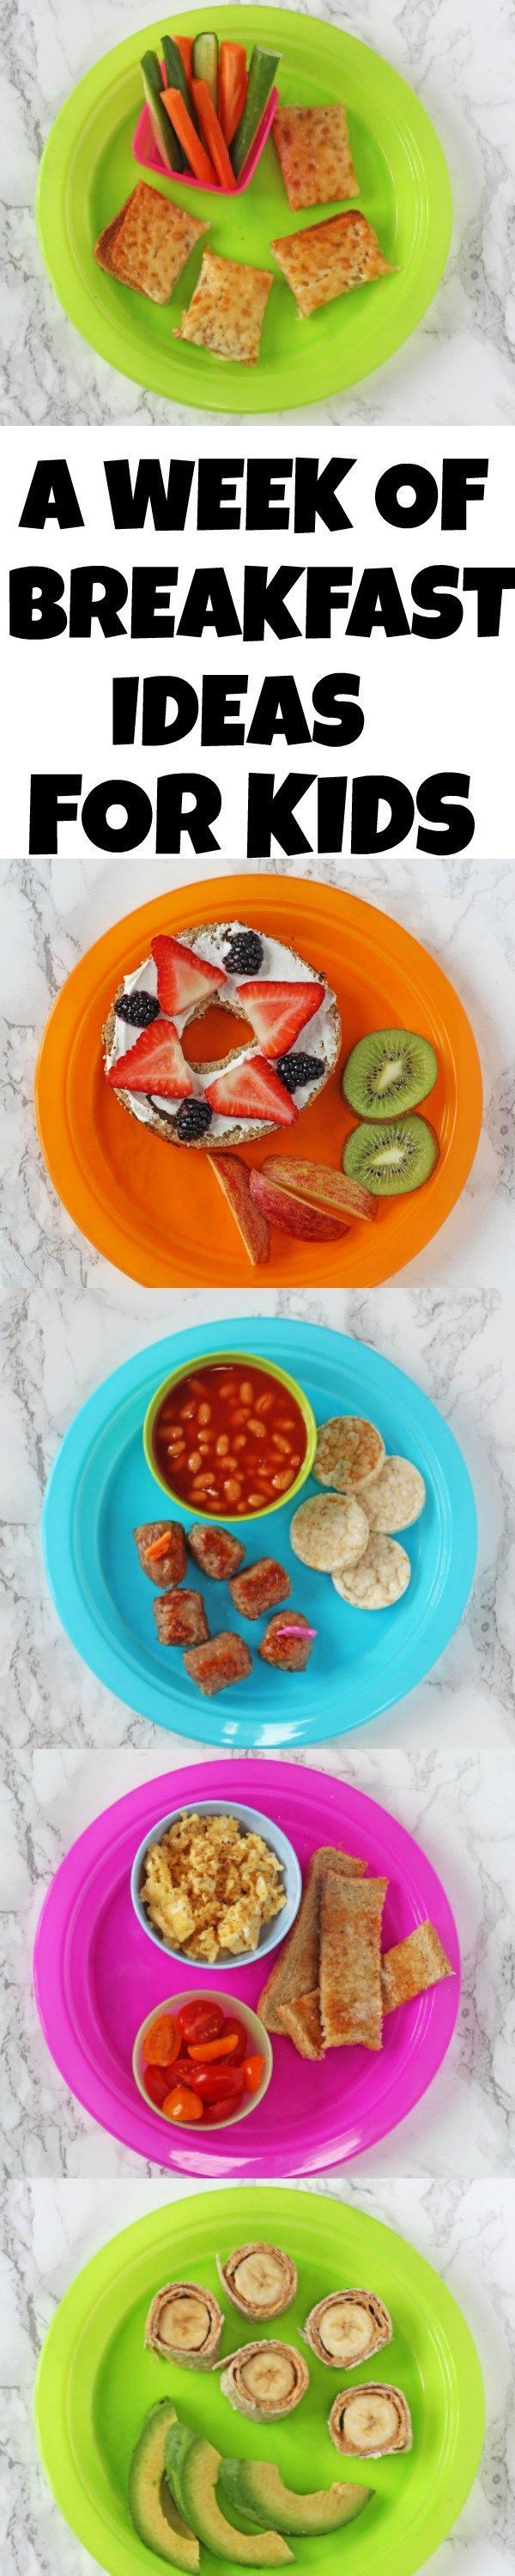 Thinking of quick, easy and healthy breakfast recipes for kids that aren't toast or cereal can be exhausting! But here's seven simple ideas to last a whole week that the kids are sure to love!